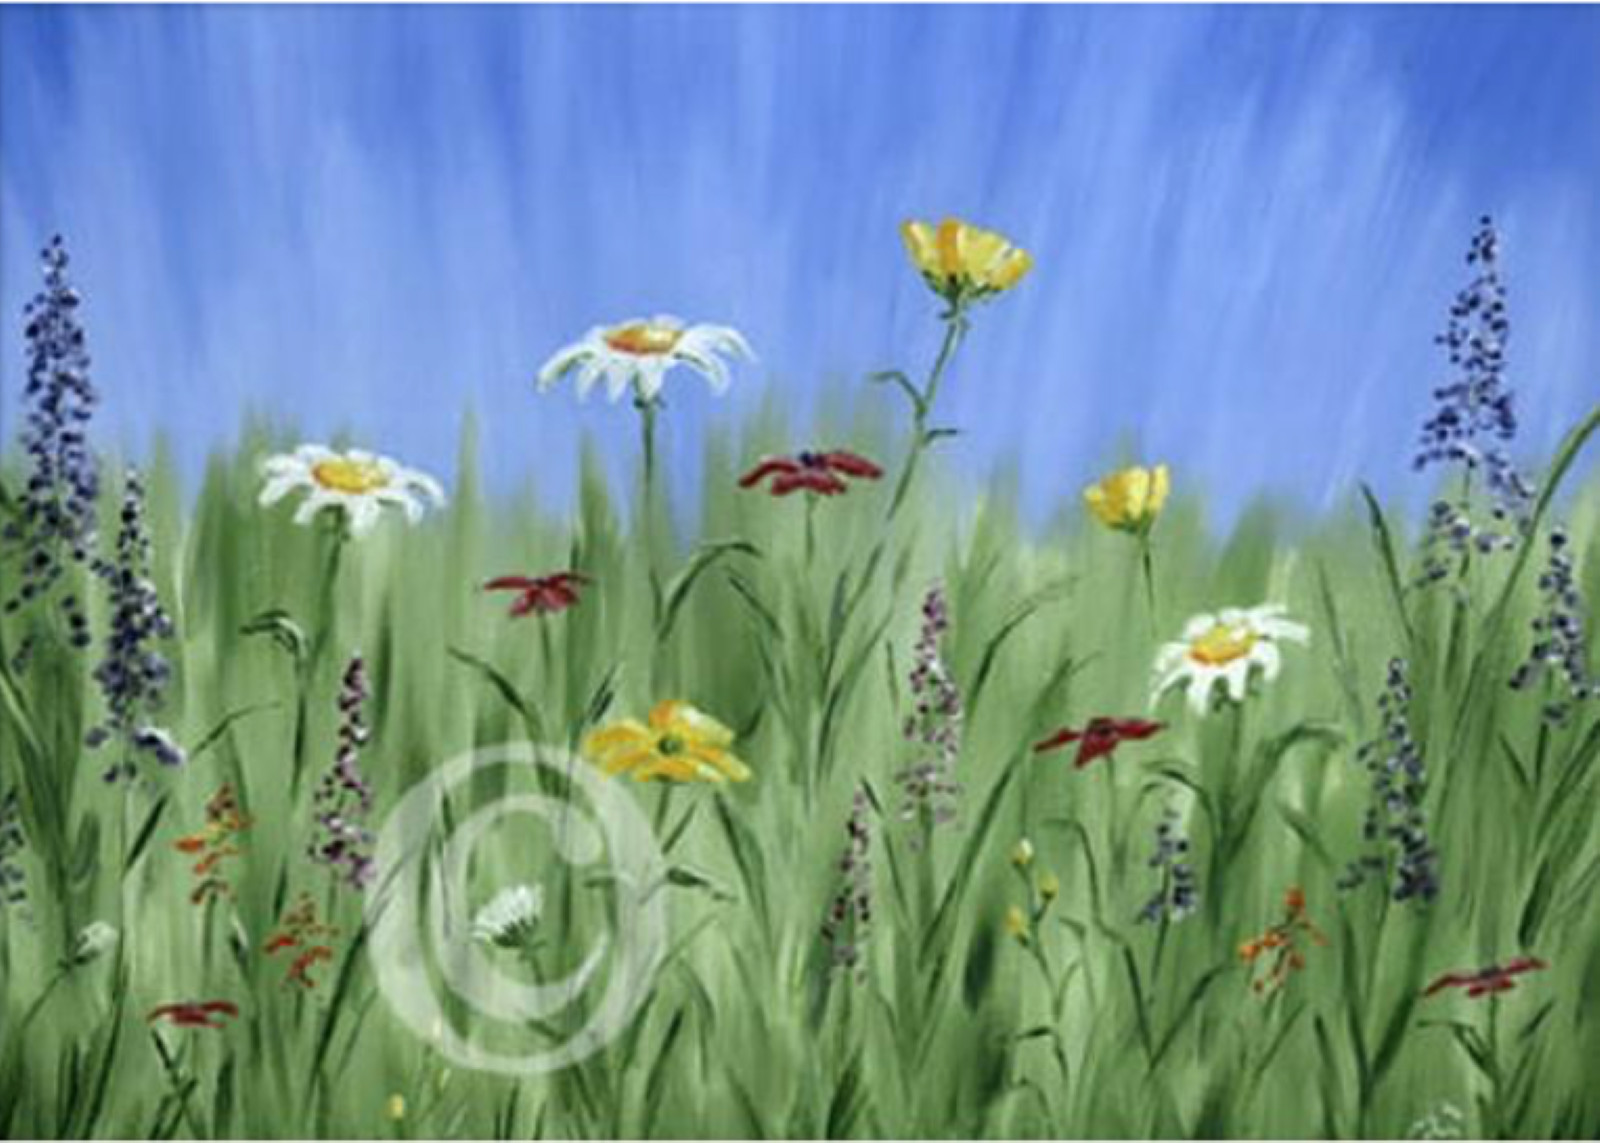 An introduction to Acrylics with Alice May Tomkins